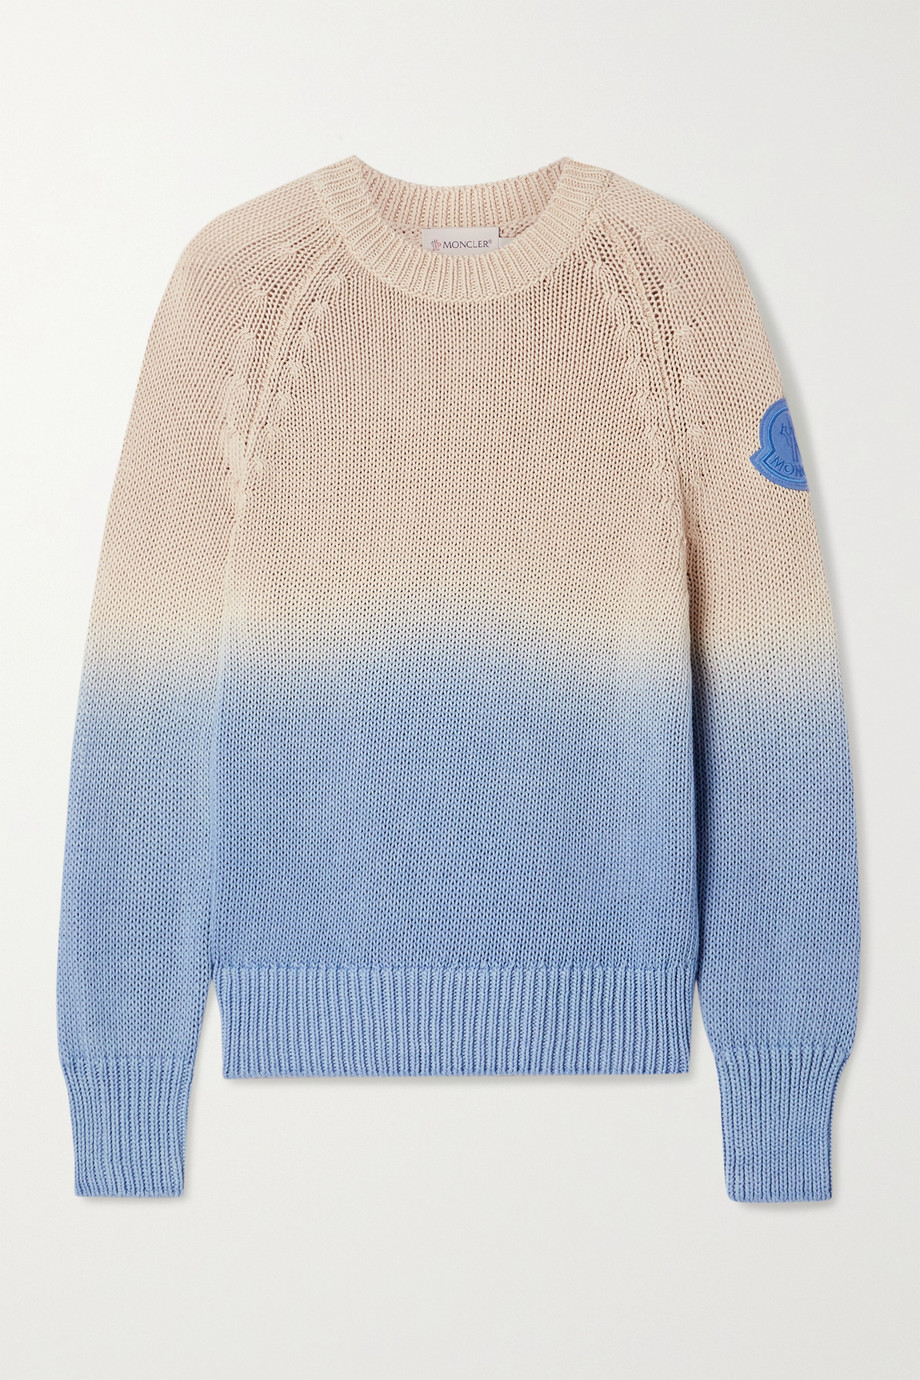 Moncler Ombré open-knit cotton sweater